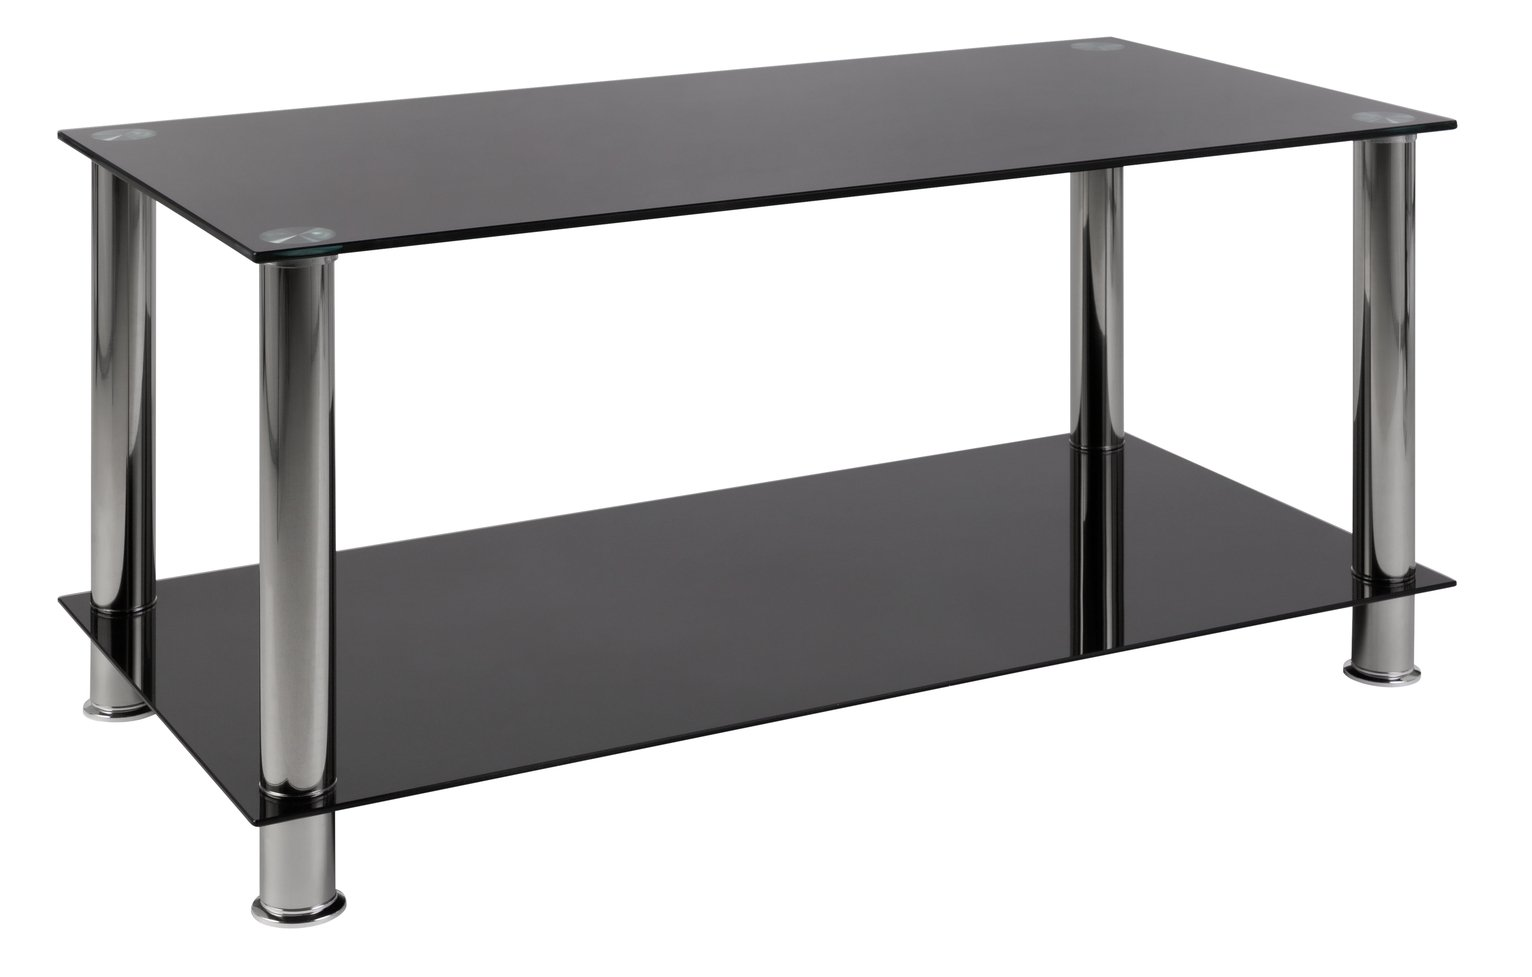 Black Glass Tables results for glass coffee table in home and garden, living room